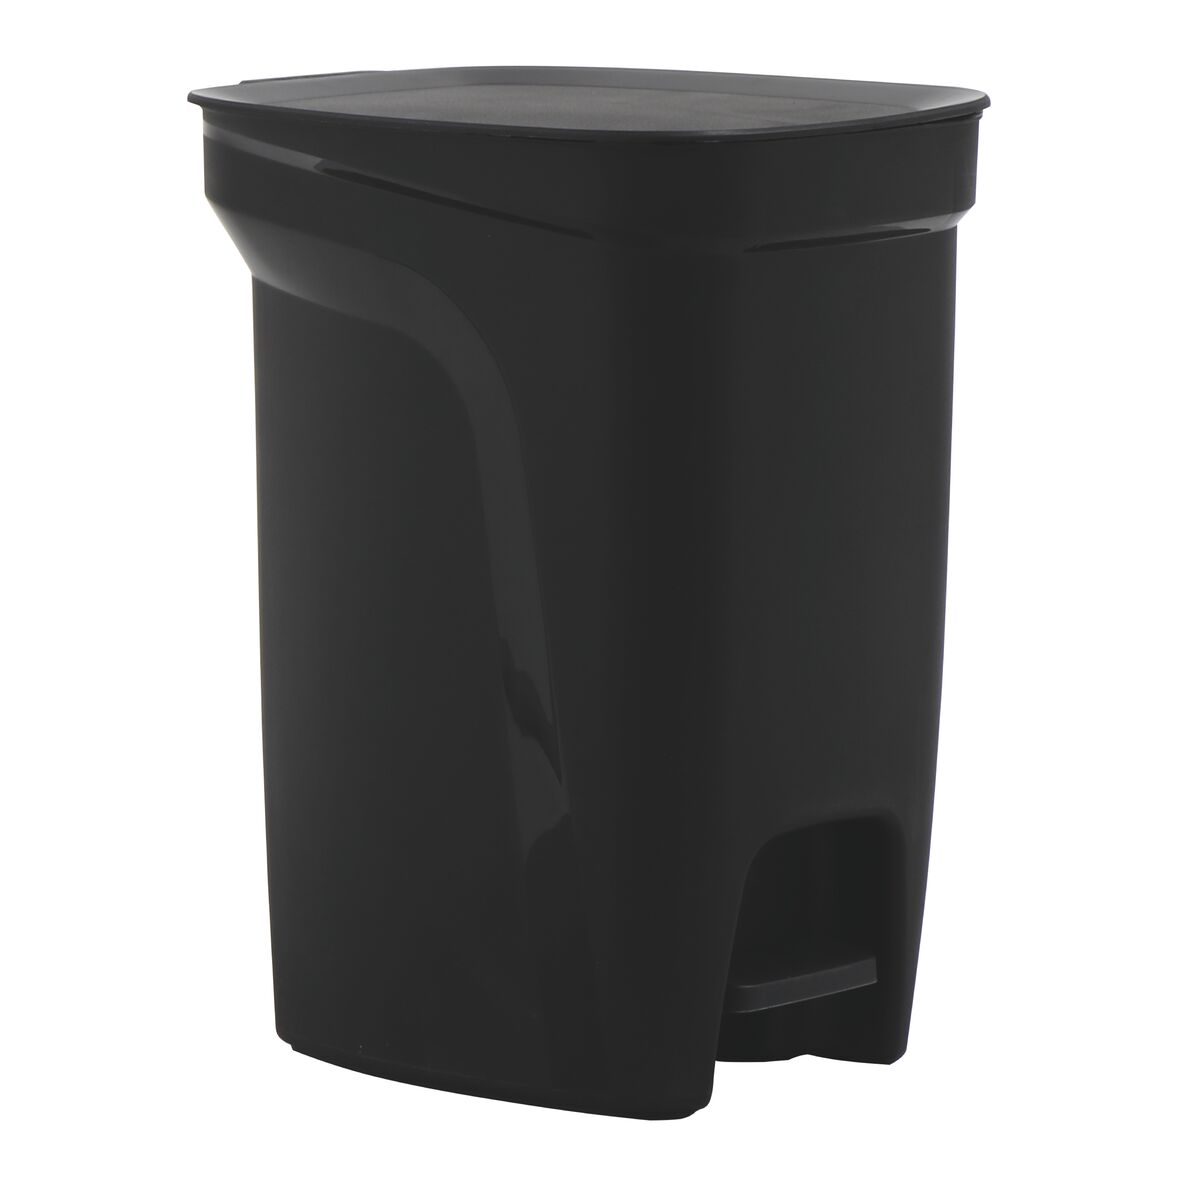 Tramontina Compact Black Polypropylene Compact Trash Can with a Galvanized Steel Rod 10L